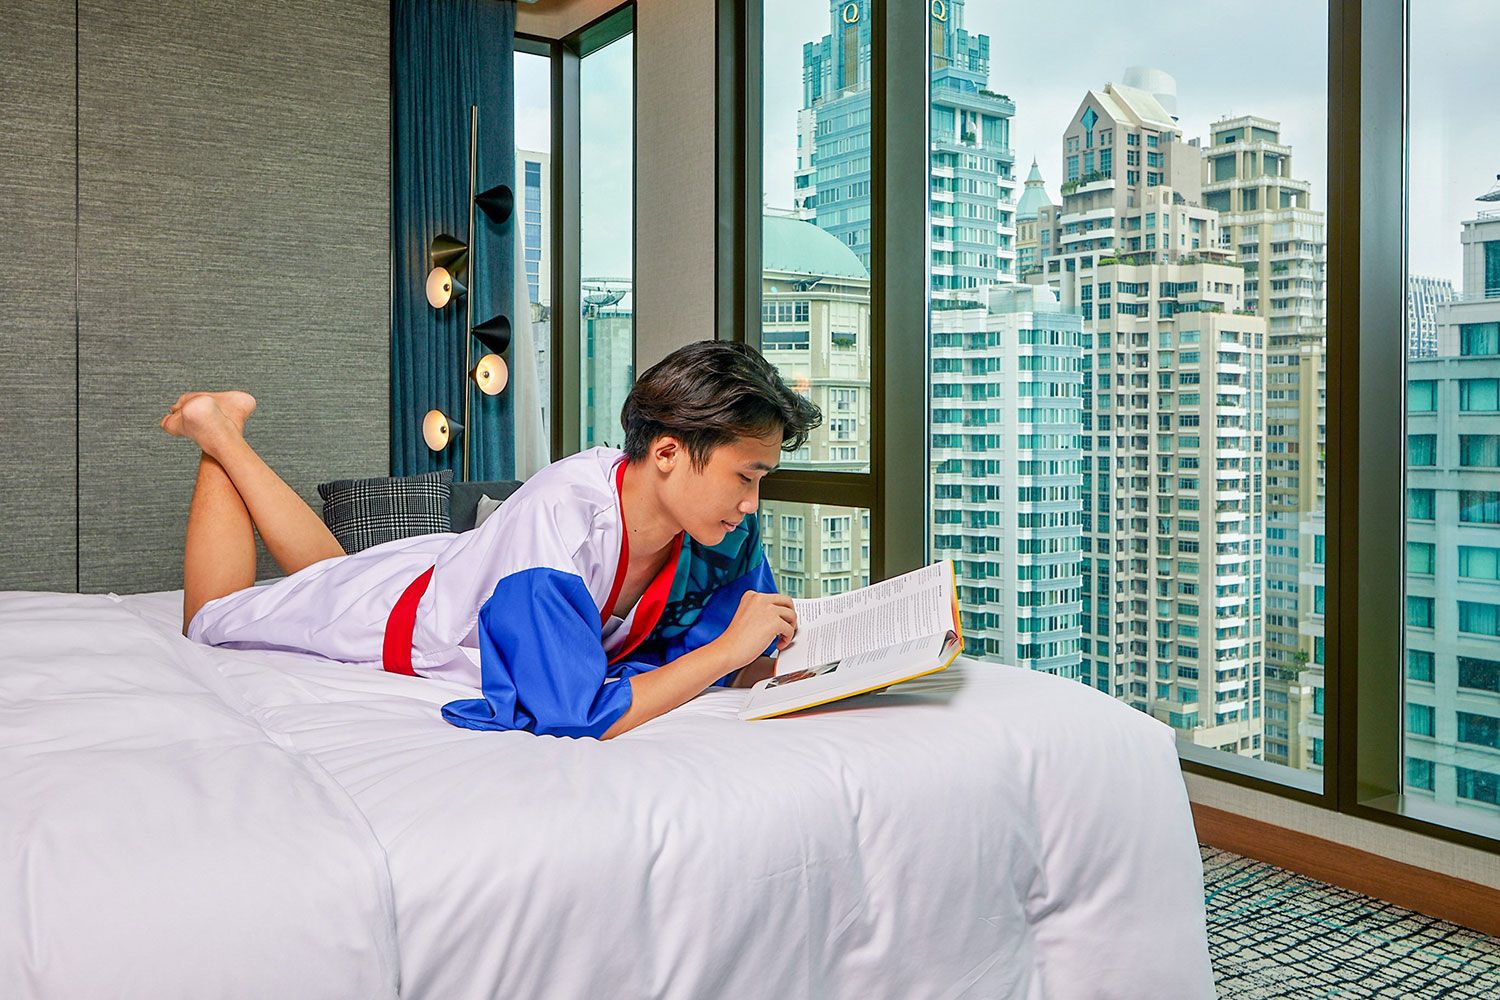 KIMPTON MAA-LAI BANGKOK'S GOT YOU COVERED WITH FULL-BOARD MEALS ON YOUR NEXT STAYCATION